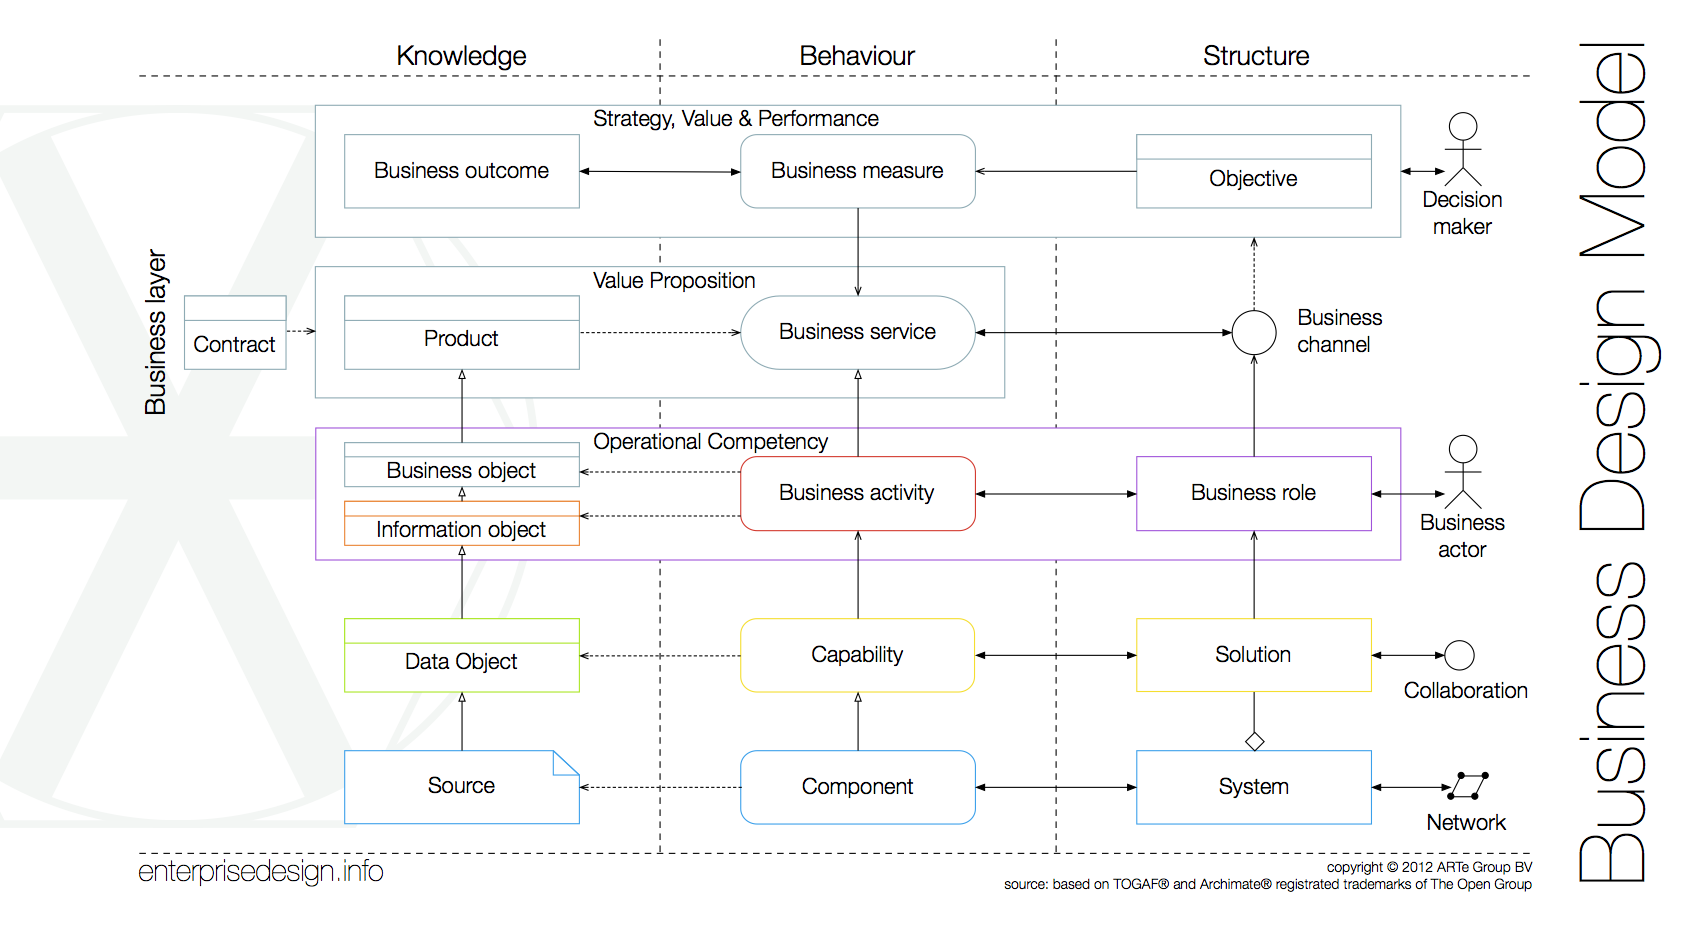 Enterprise Design Model